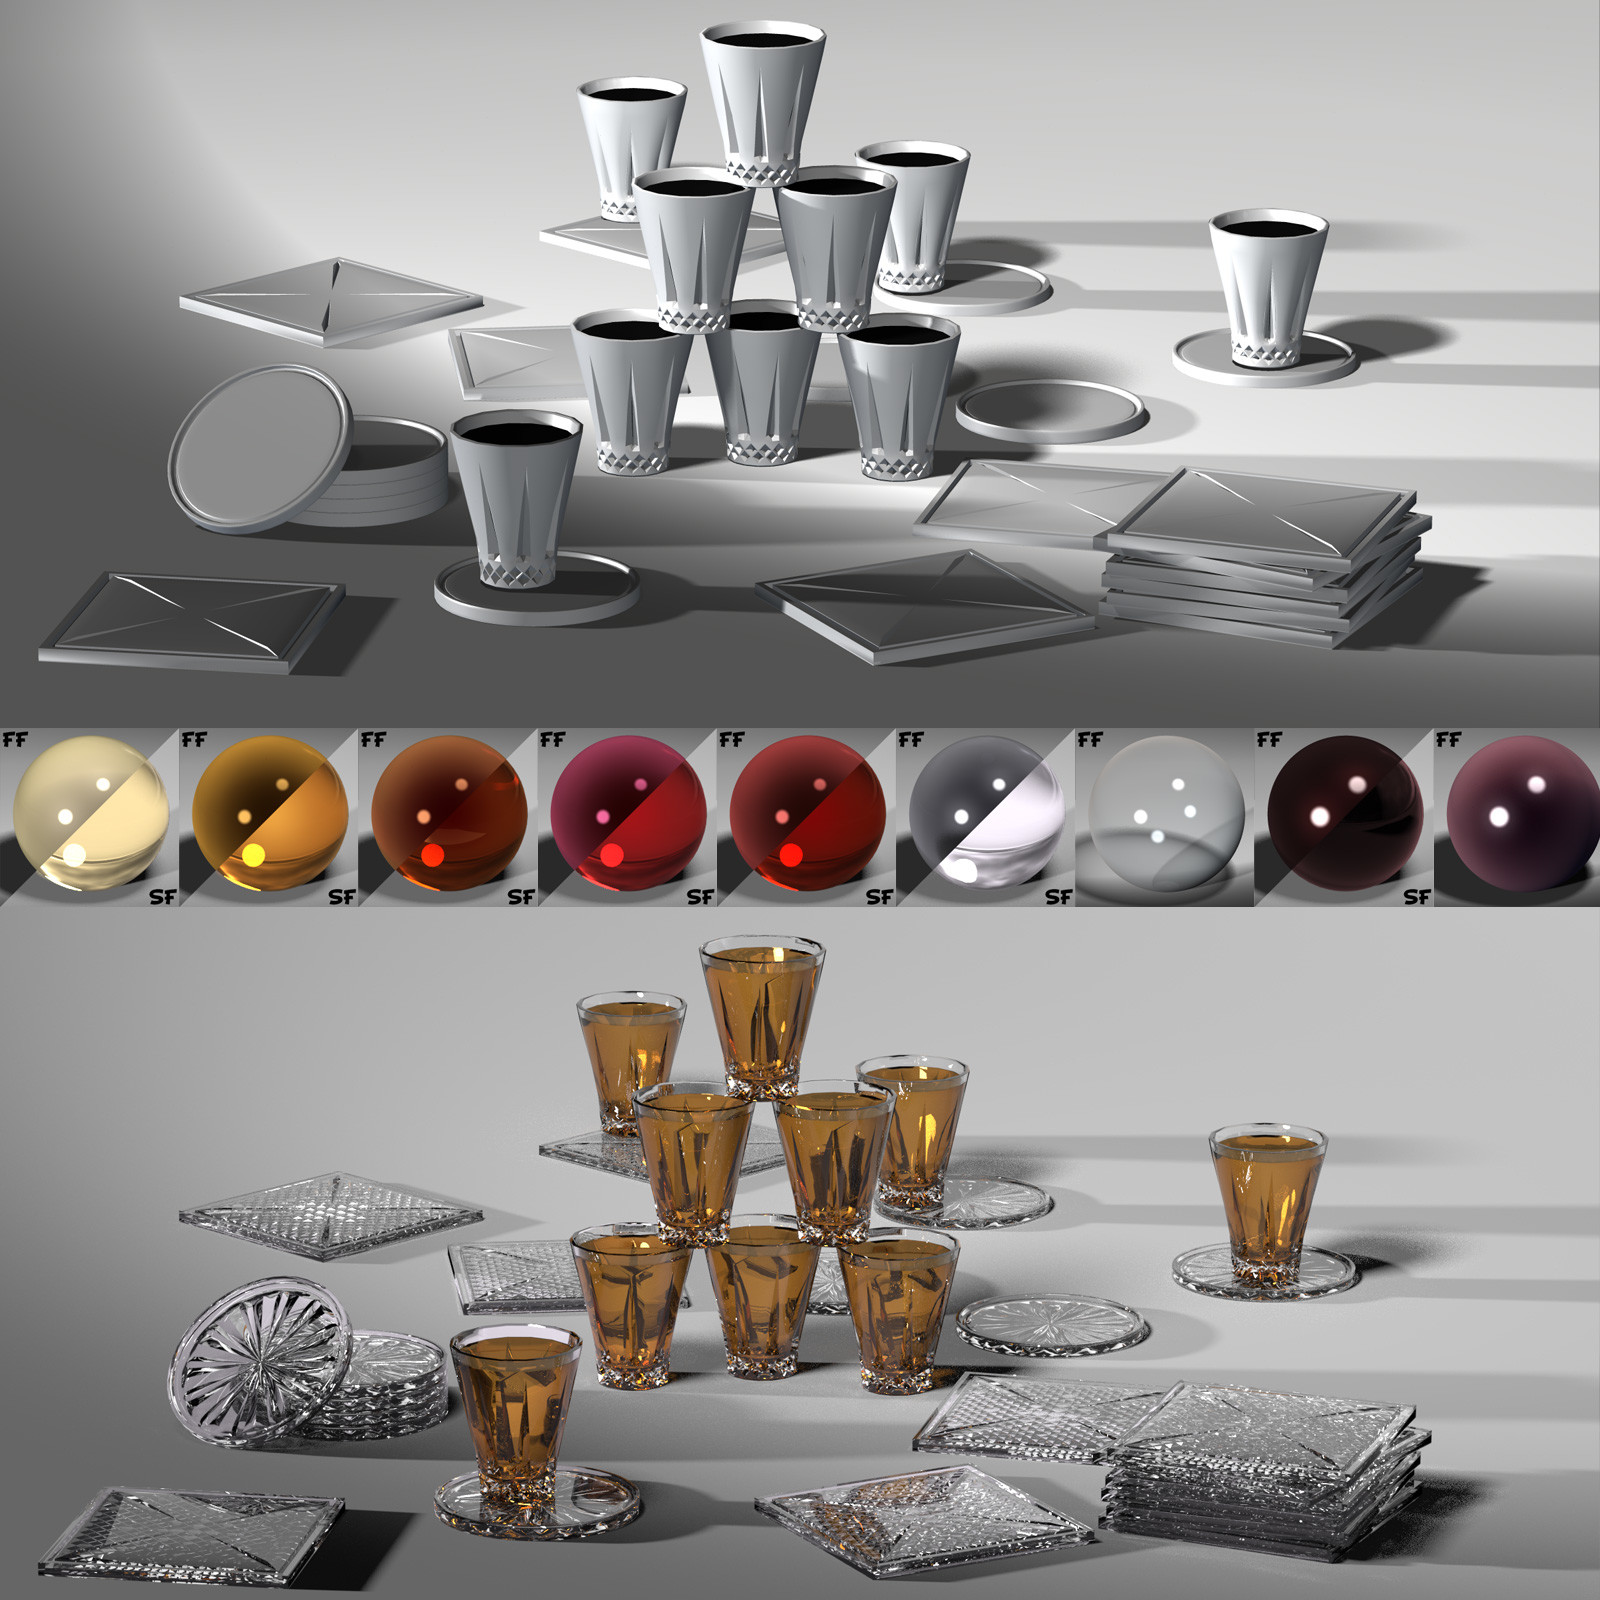 This showcases the shotglasses, coasters, and materials associated with Superfly/Cycles in Poser.